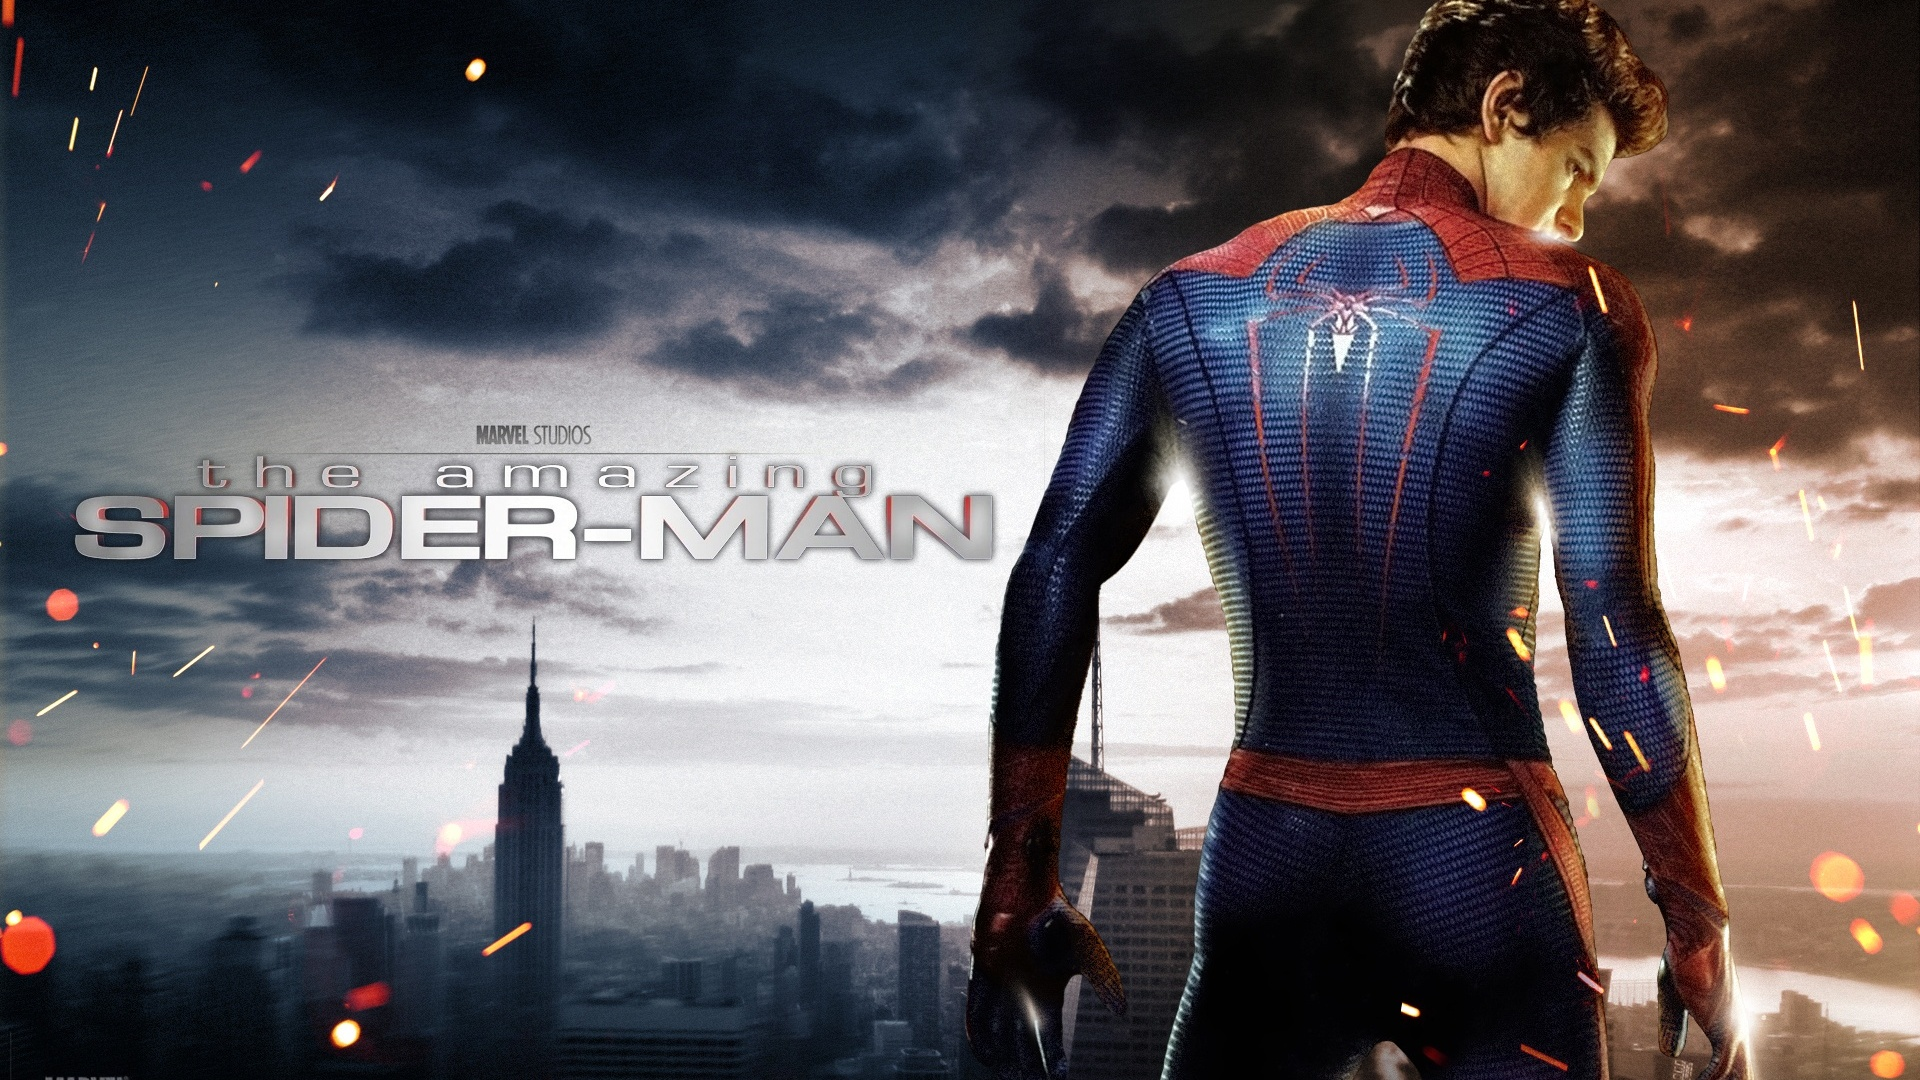 Wallpaper The Amazing Spider Man 1920x1200 Hd Picture Image